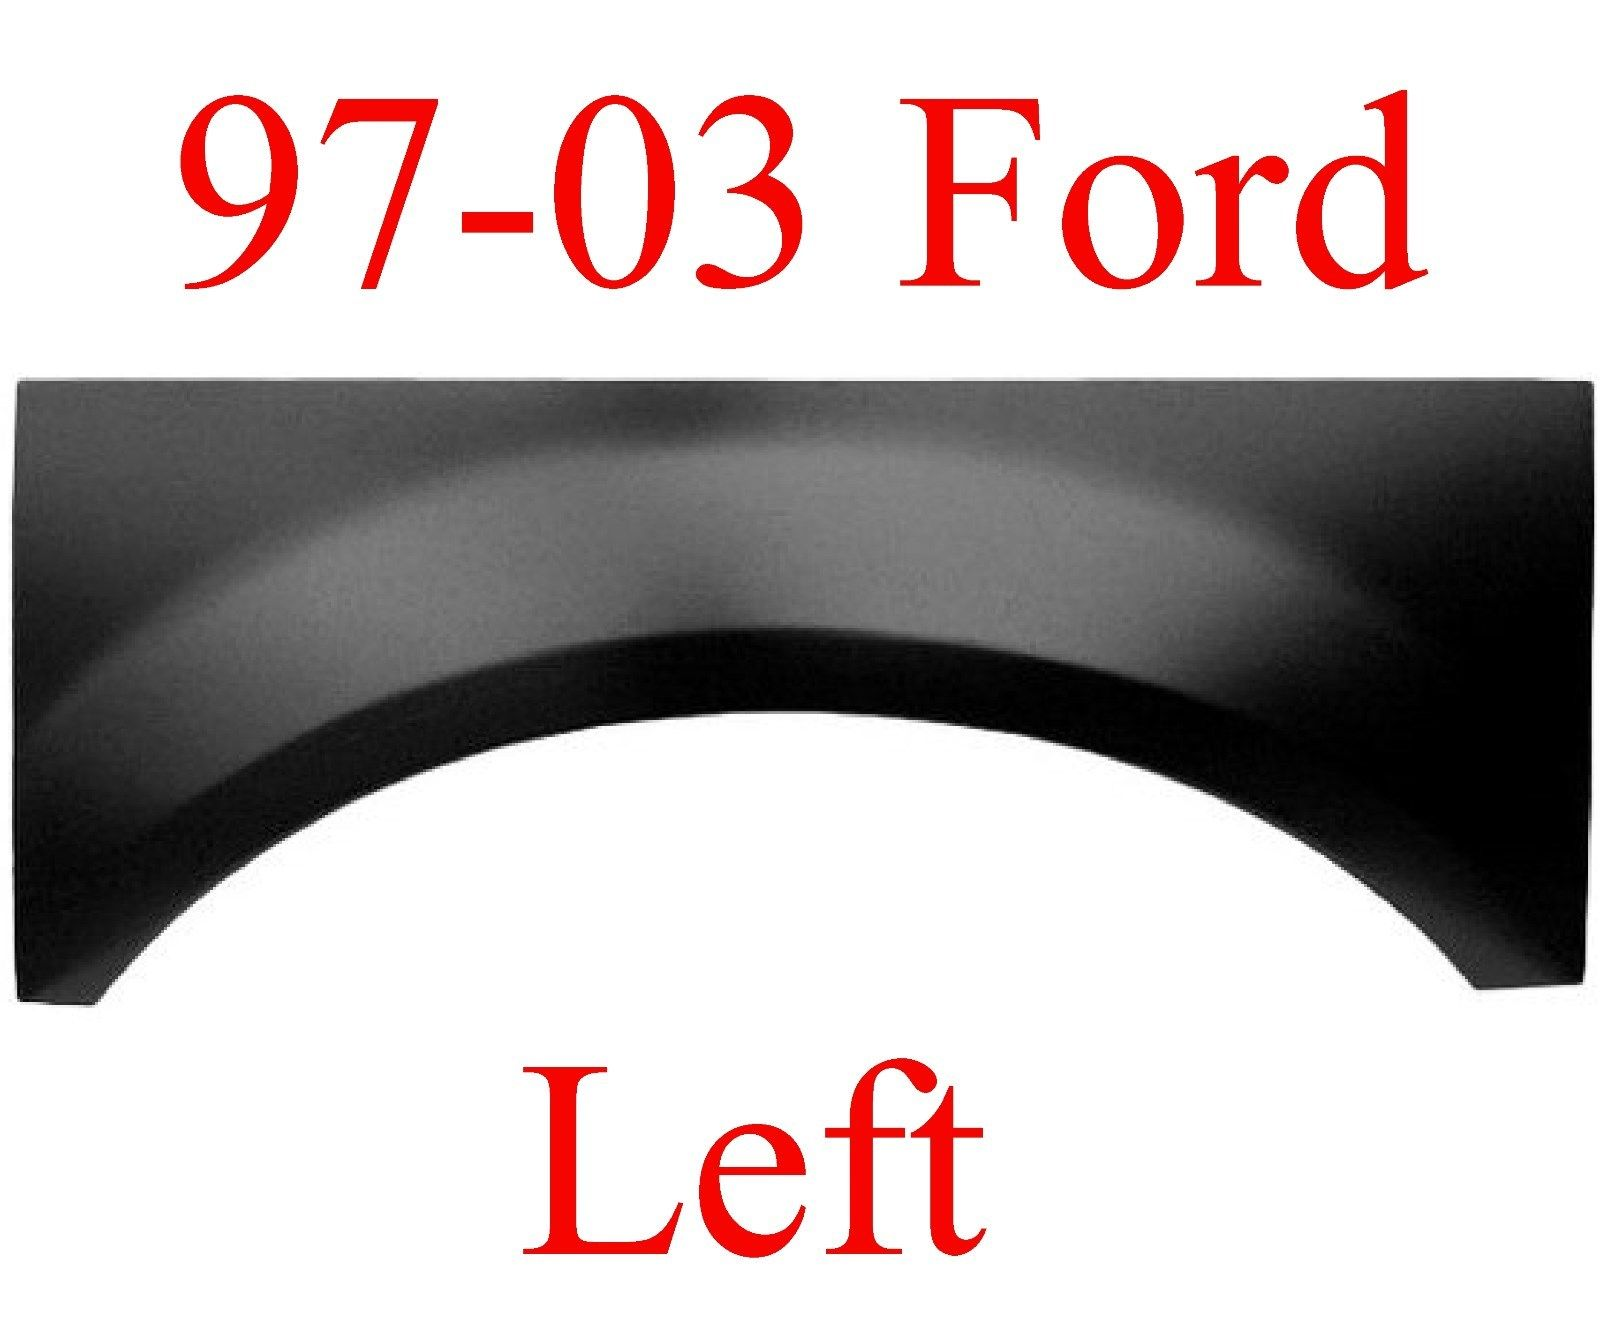 97-03 Ford F150 Left Upper Arch